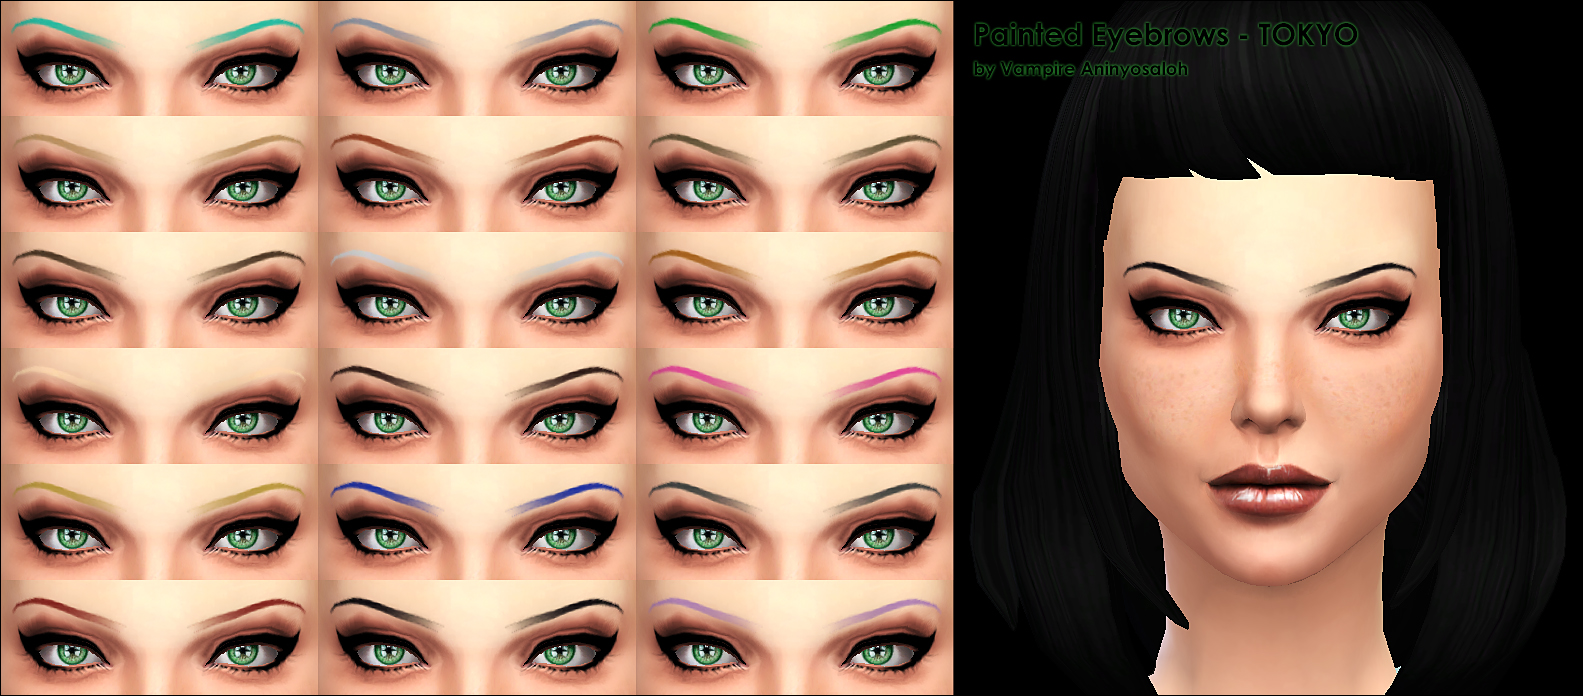 Painted Eyebrows -2 styles- by Vampire_aninyosaloh